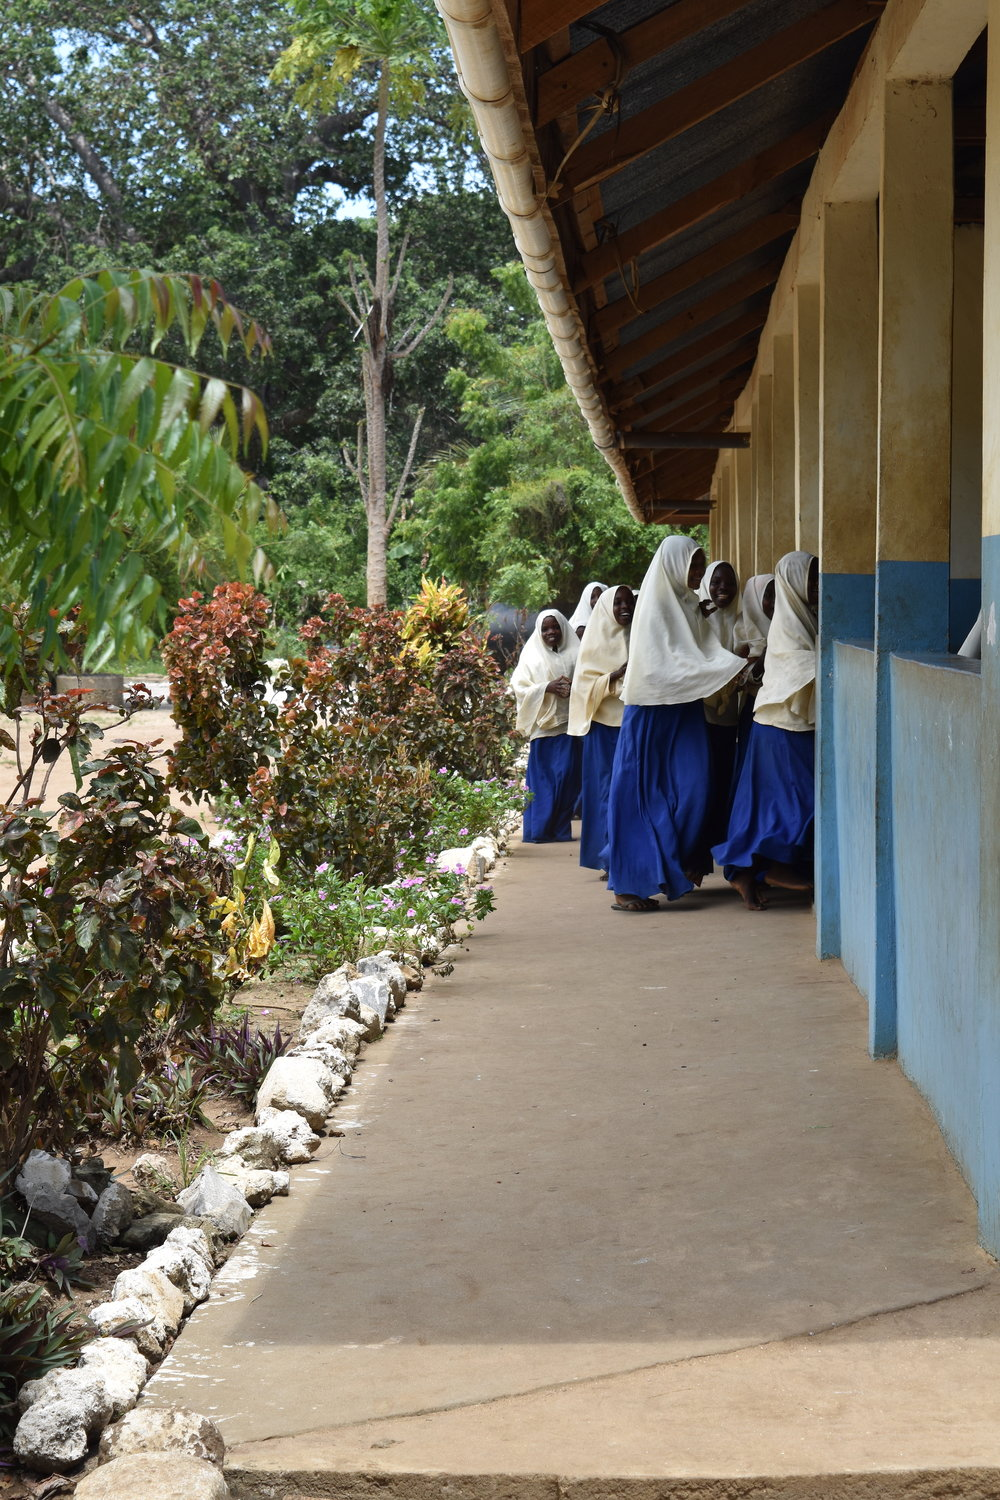 Village girls attending the local school